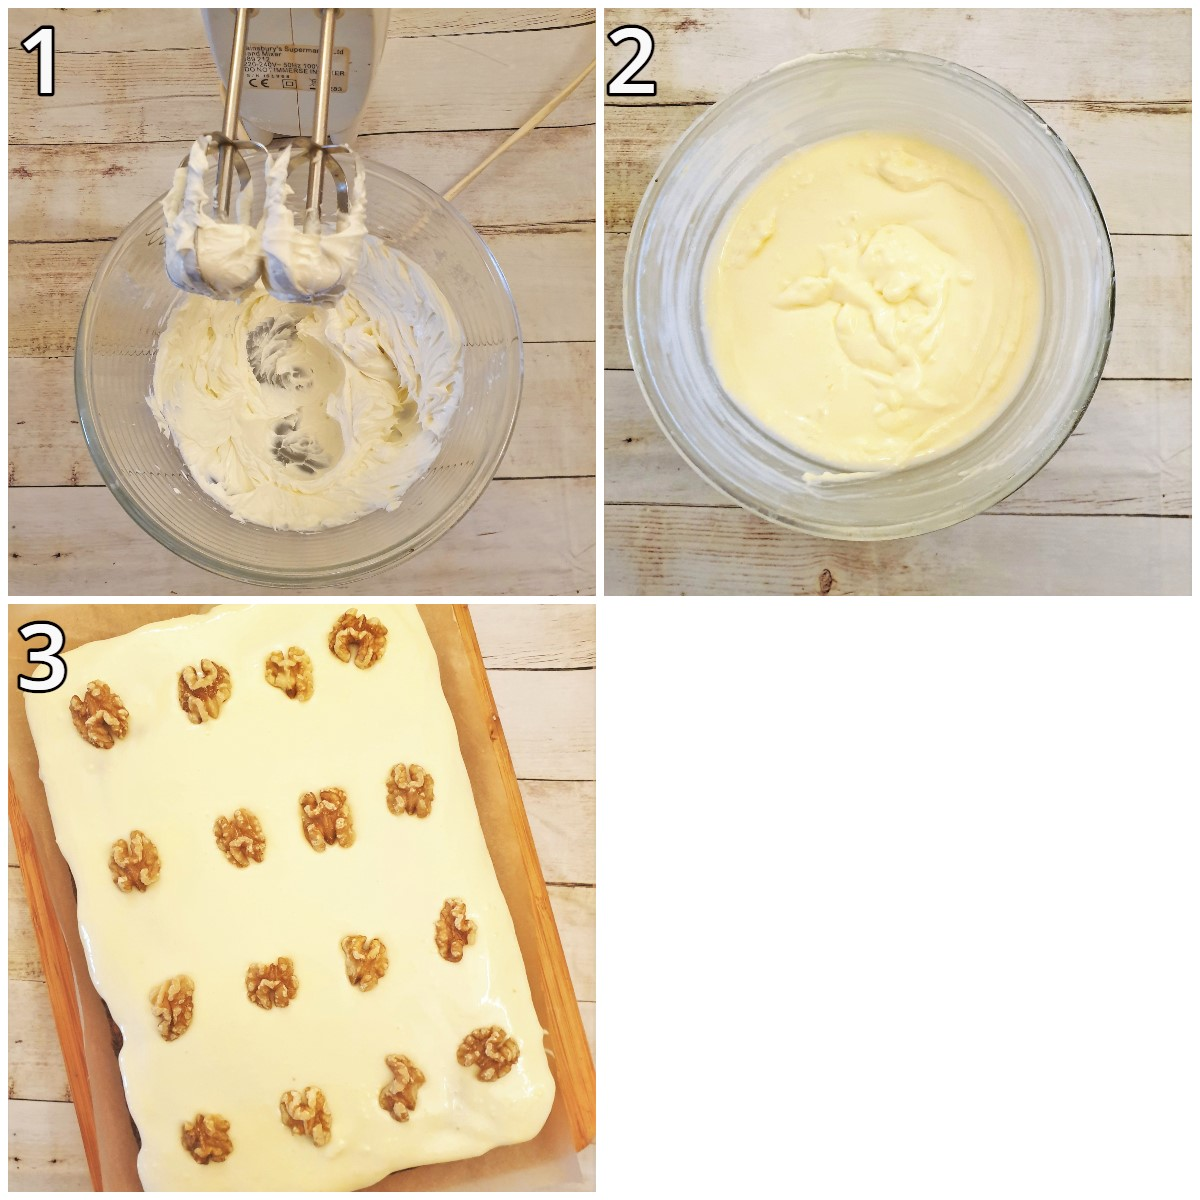 Steps for making the frosting and decorating the cake.